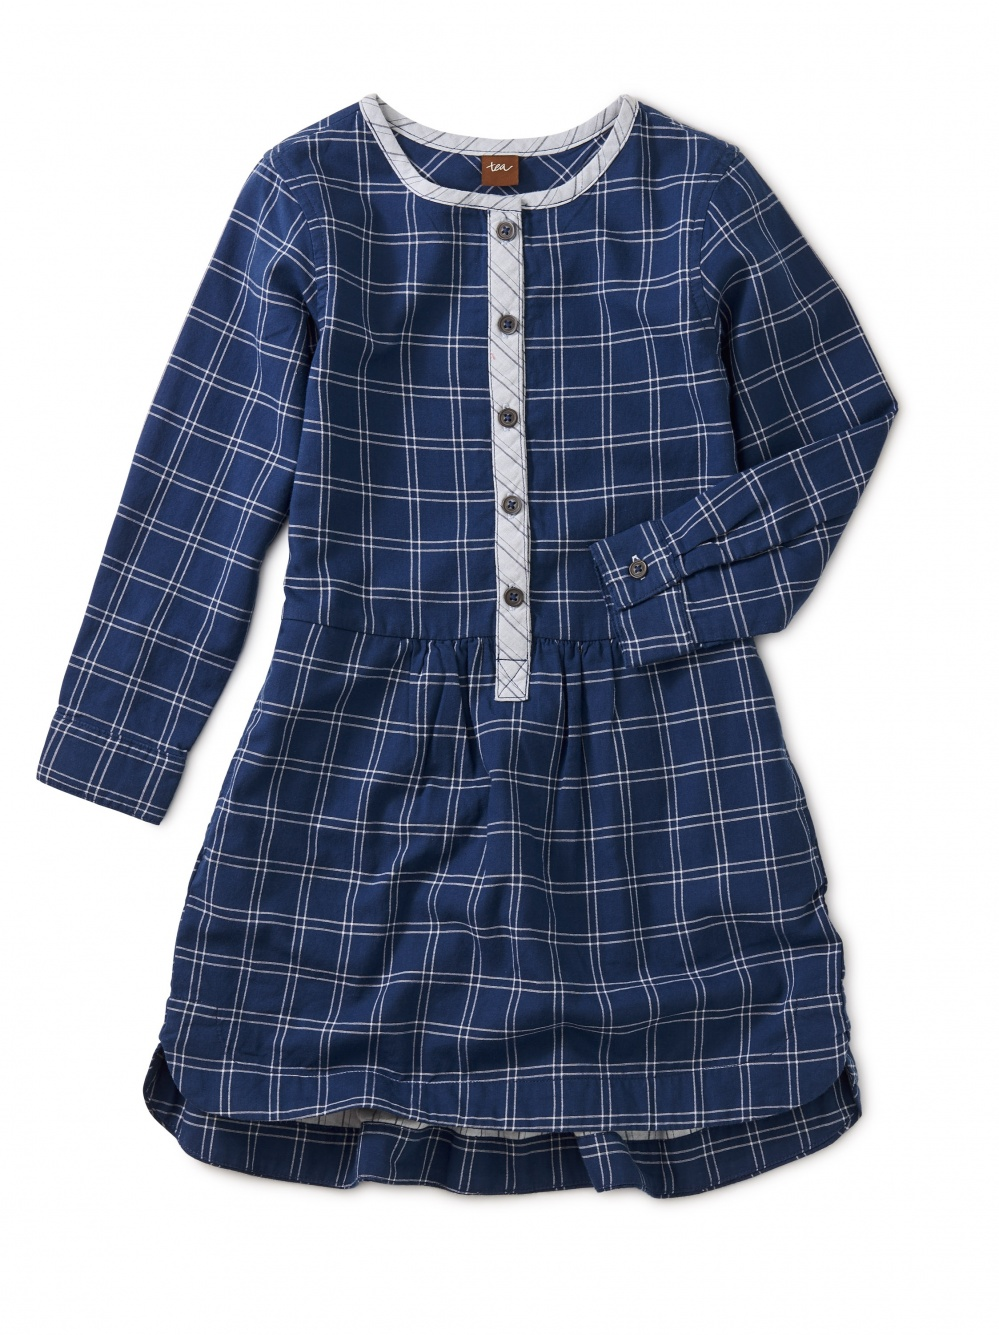 Checkered Plaid Woven Shirtdress